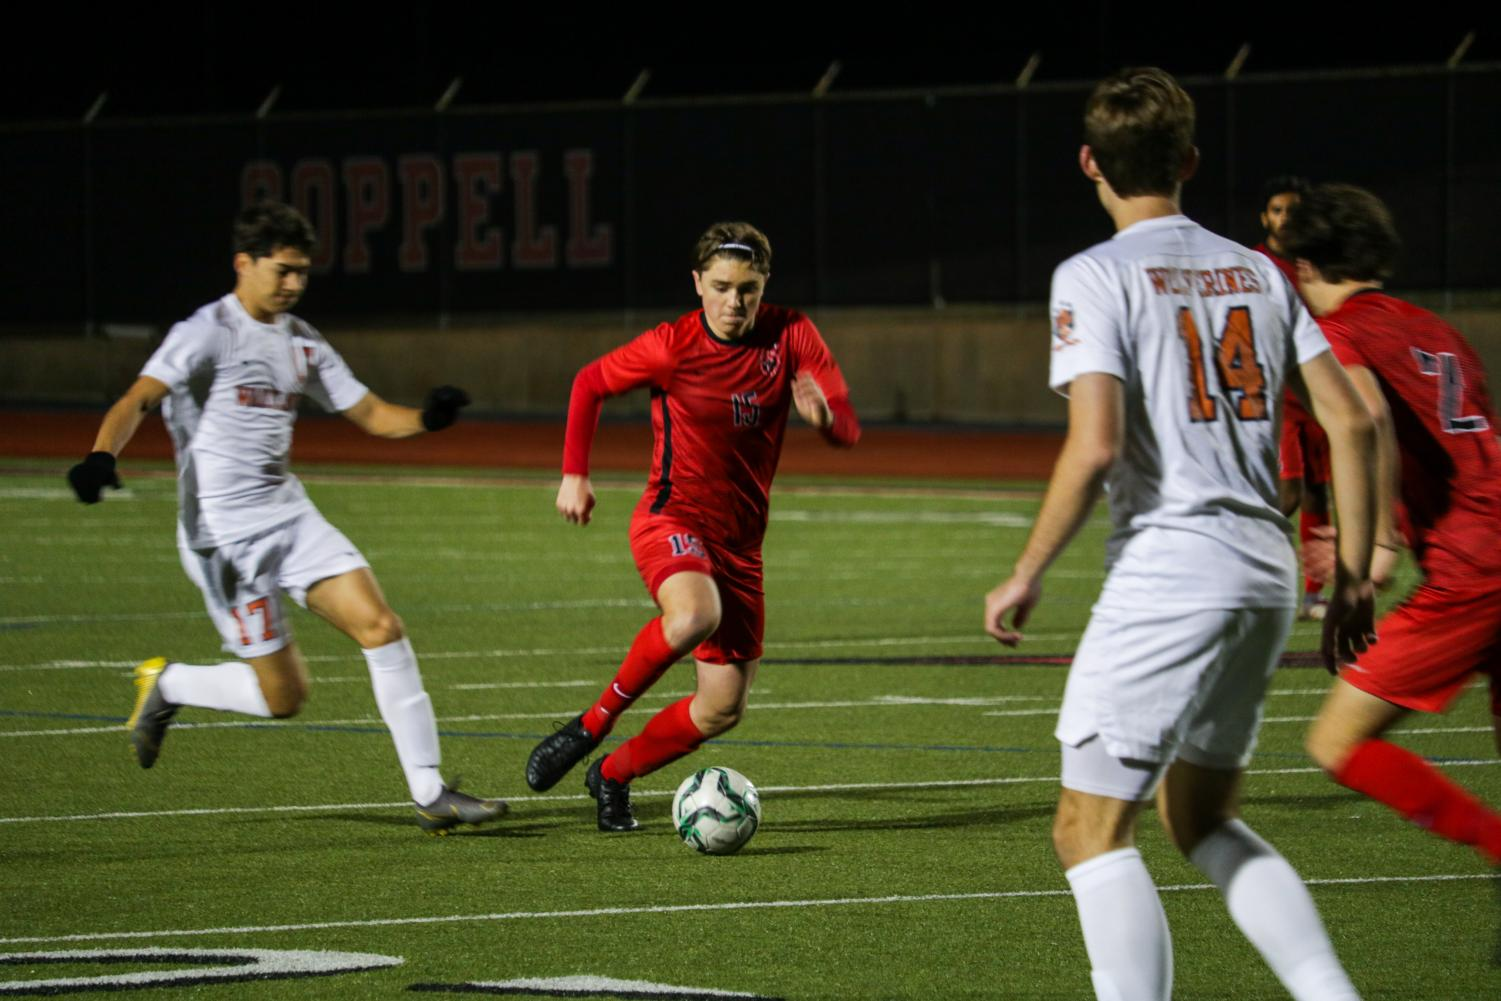 Coppell freshman center midfielder Nicolas Radicic passes during the scrimmage against Frisco Wakeland on Dec. 12 at Buddy Echols Field. After playing soccer for 14 years, Radicic is one of two freshmen on the varsity team.